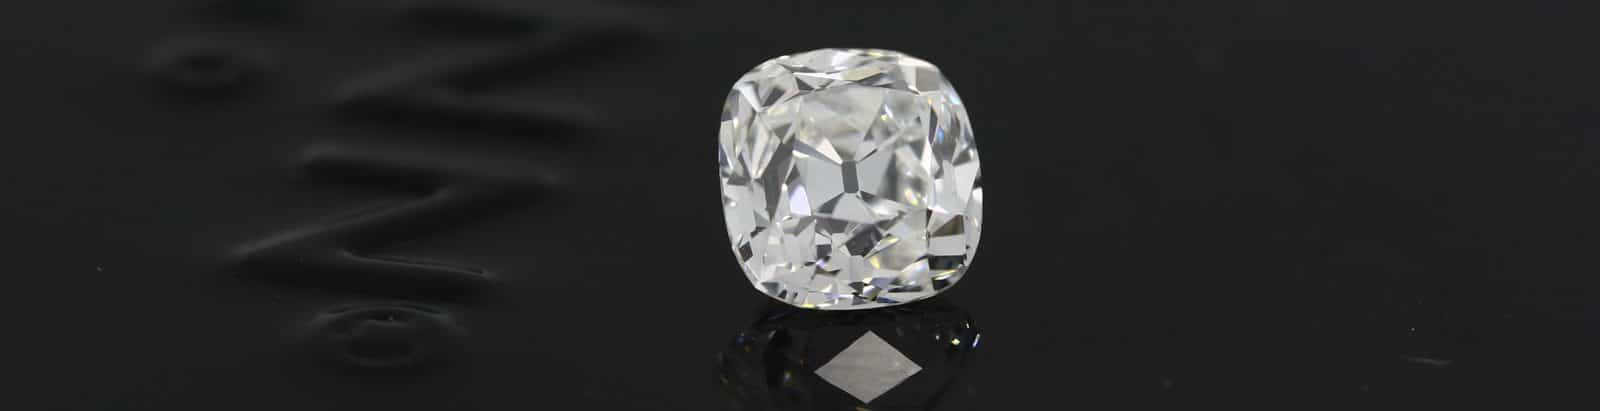 Old Mine cut Diamond by GemConcepts